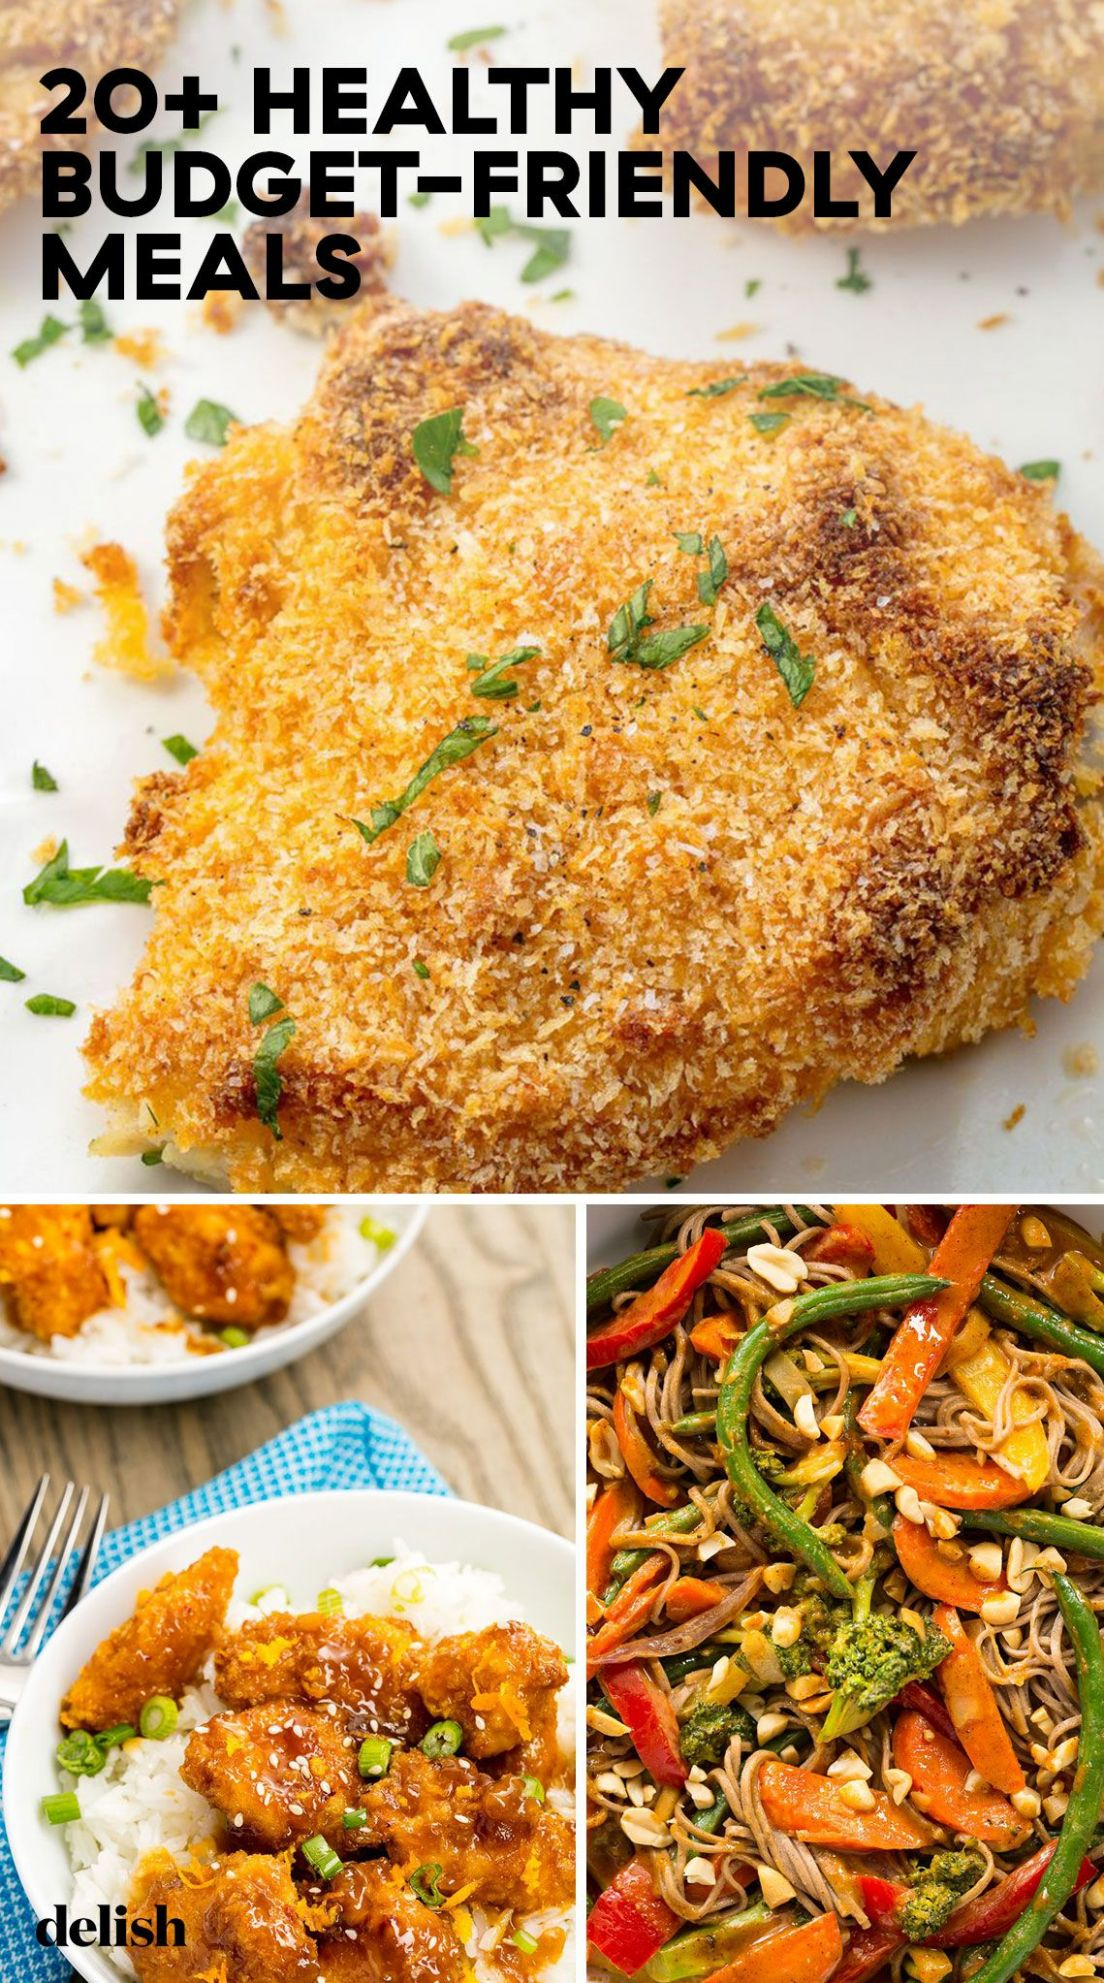 10+ Easy Low Calorie Meals - Low Cal Dinner Recipes - Dinner Recipes Delish